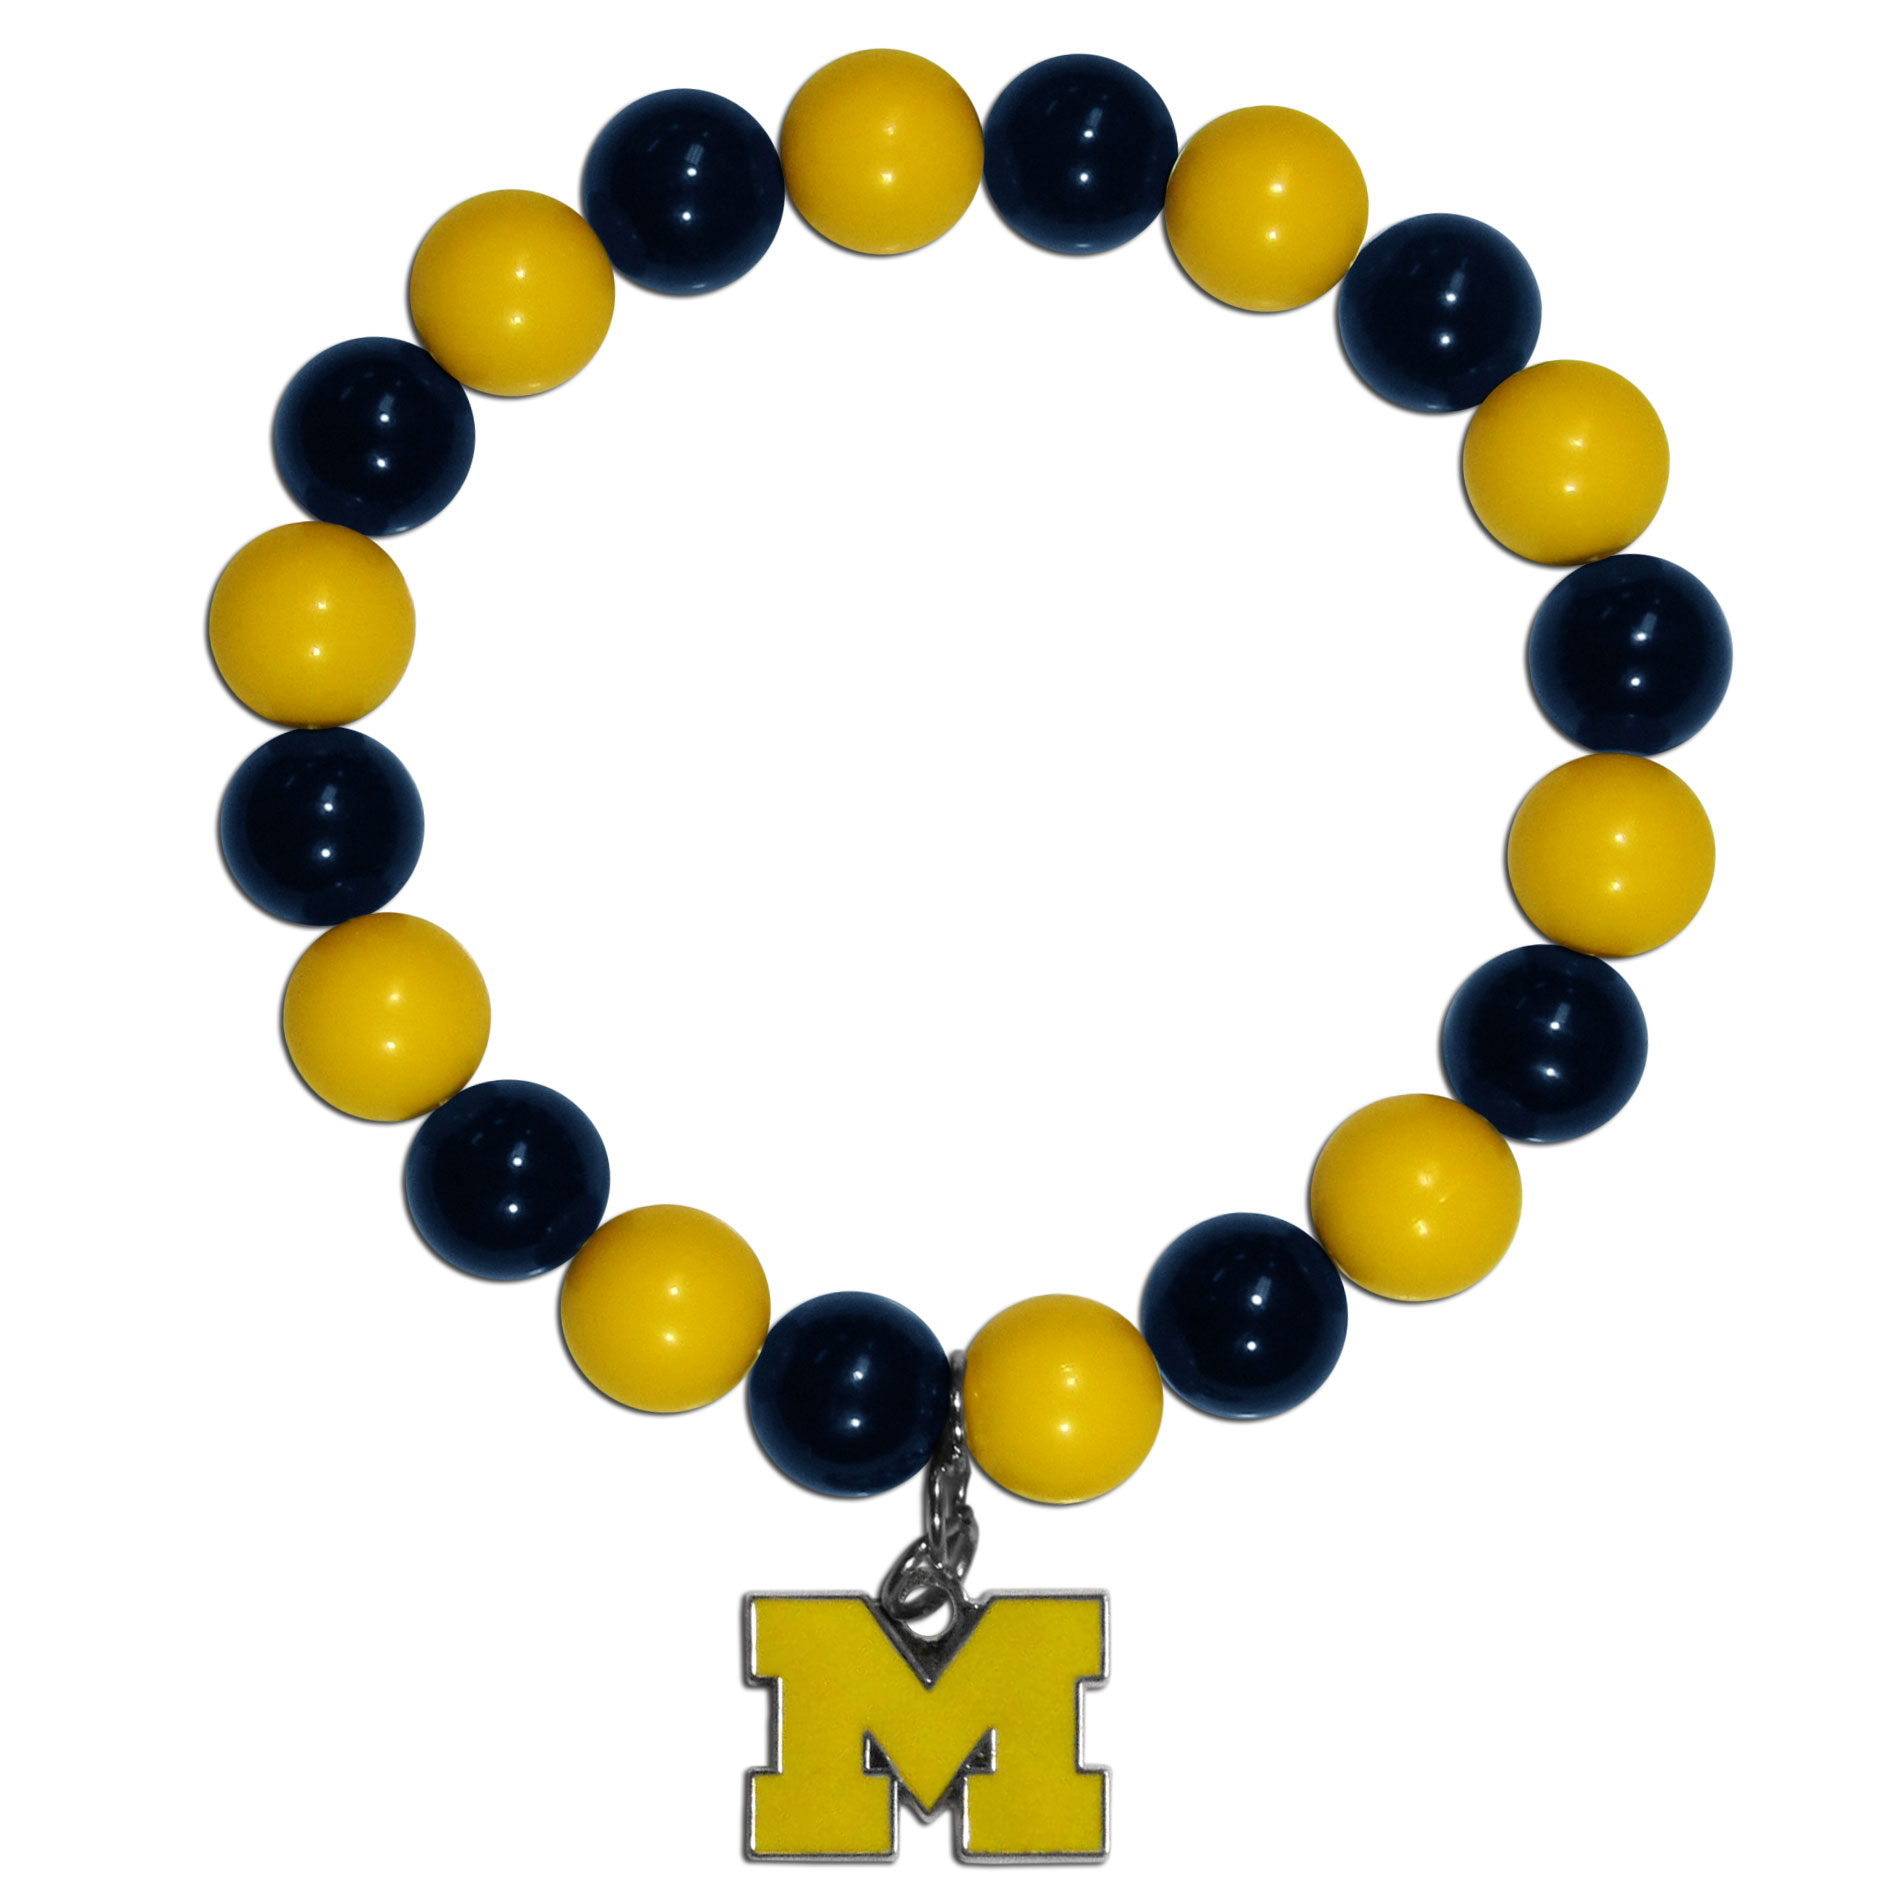 Michigan Wolverines Fan Bead Bracelet - Flash your Michigan Wolverines spirit with this bright stretch bracelet. This new bracelet features multicolored team beads on stretch cord with a nickel-free enameled chrome team charm. This bracelet adds the perfect pop of color to your game day accessories.